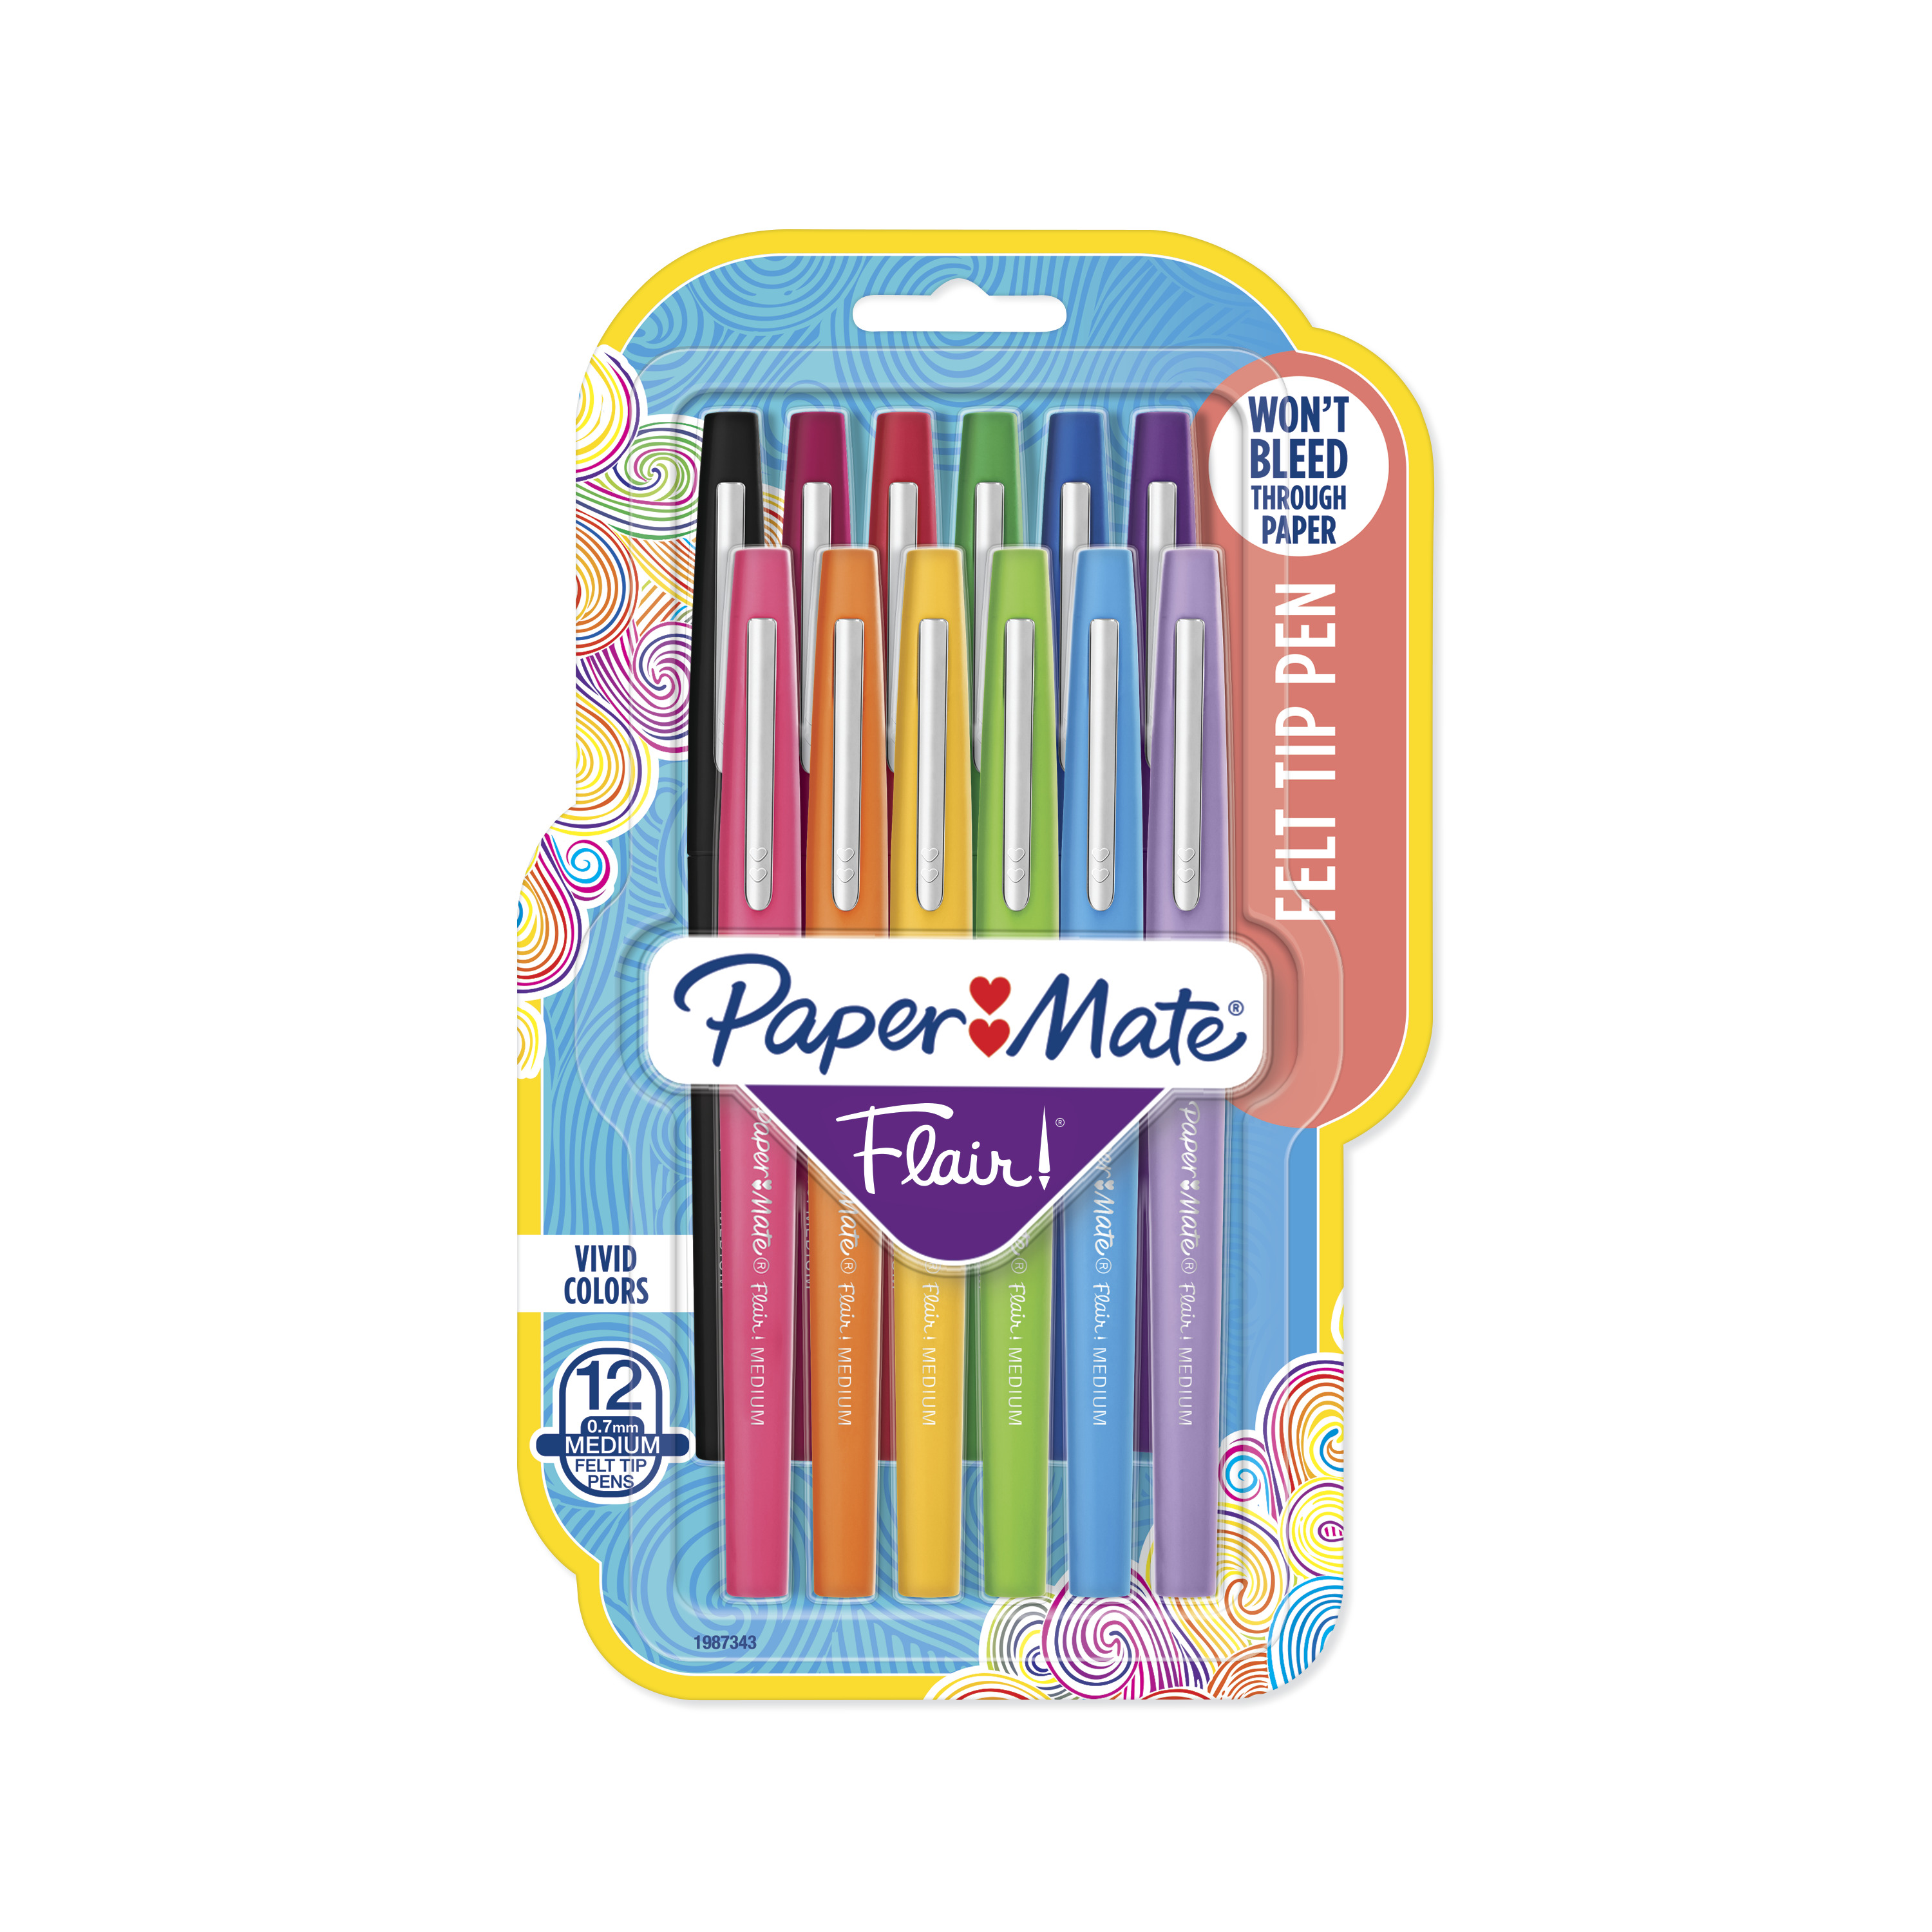 Paper Mate Flair Felt Tip Pens, Medium Point, Assorted Colors, 12 Count